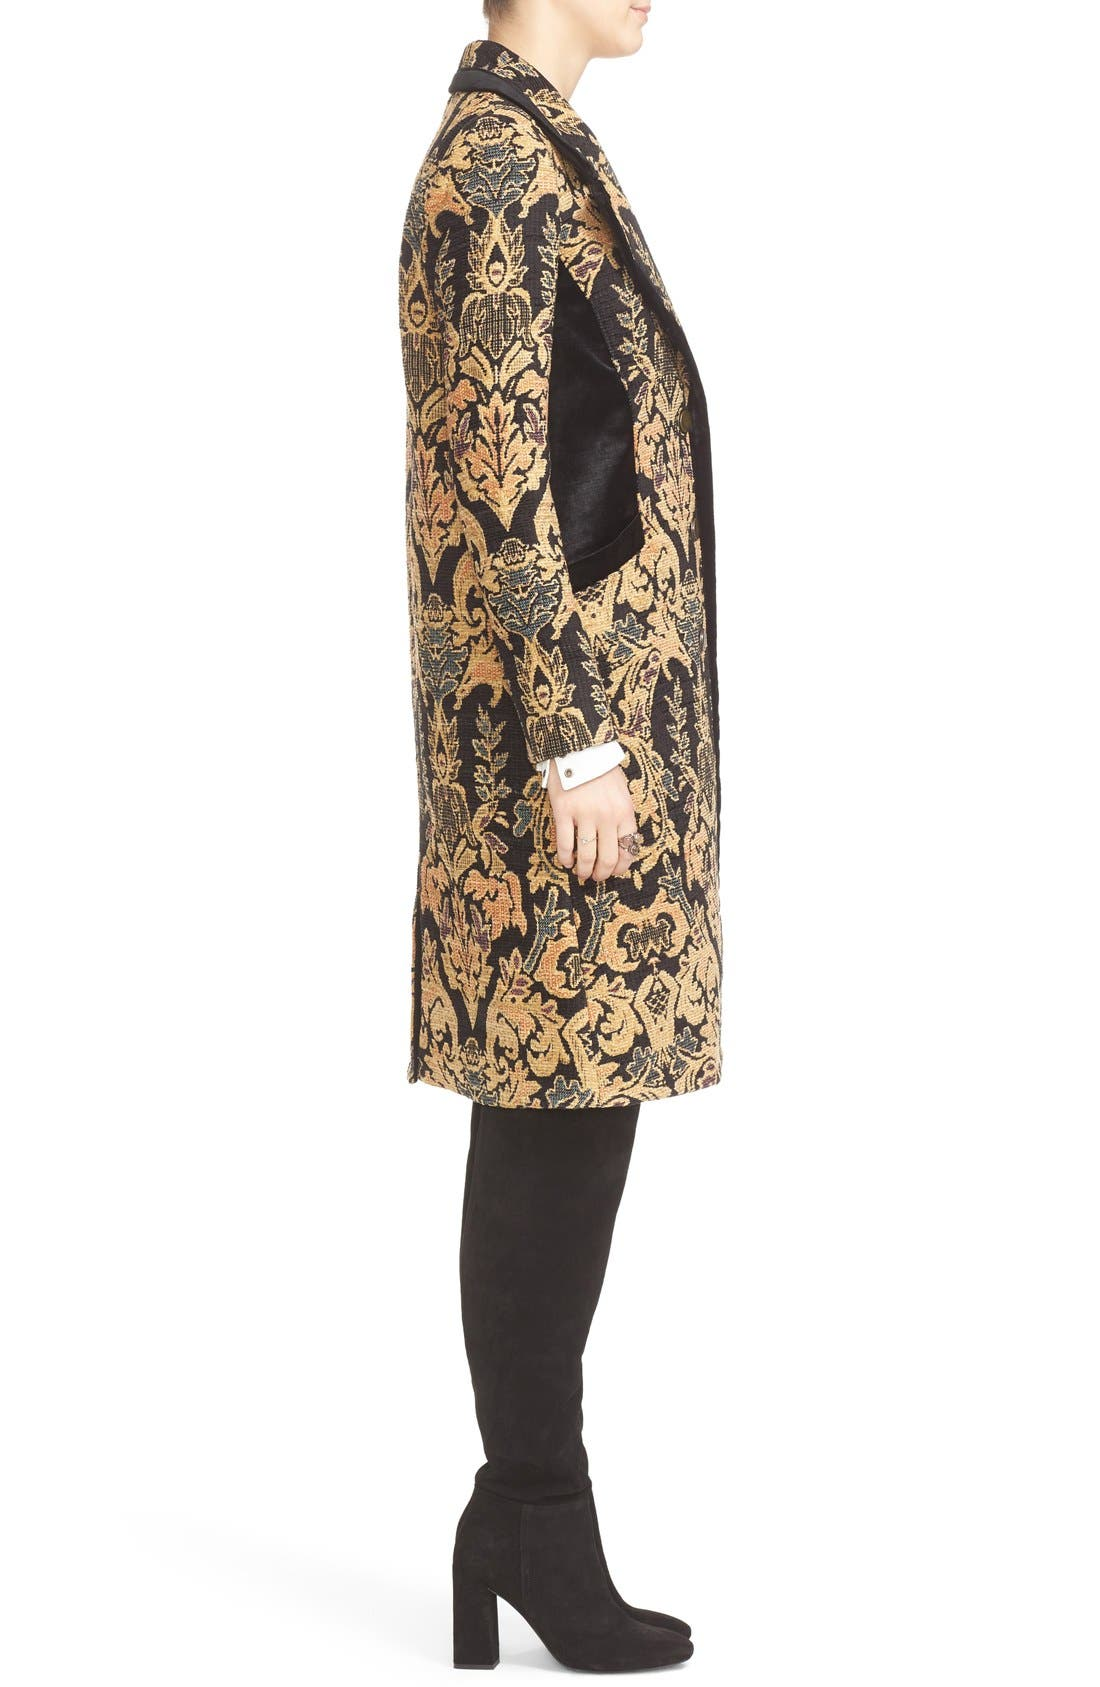 FREE PEOPLE,                             Jacquard Coat,                             Alternate thumbnail 2, color,                             001